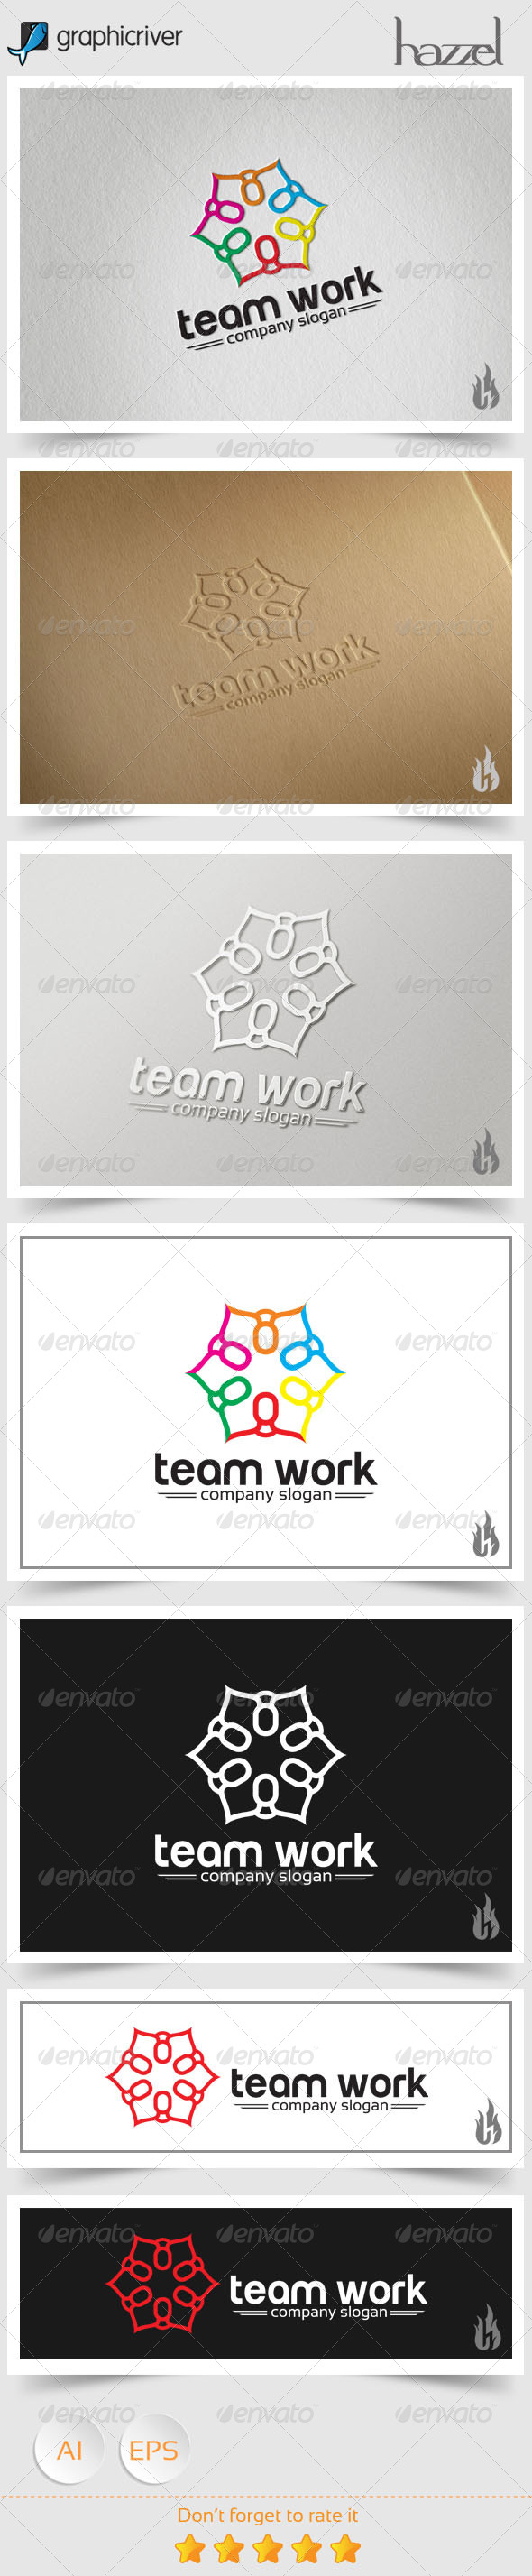 GraphicRiver Team Work Logo 8536185